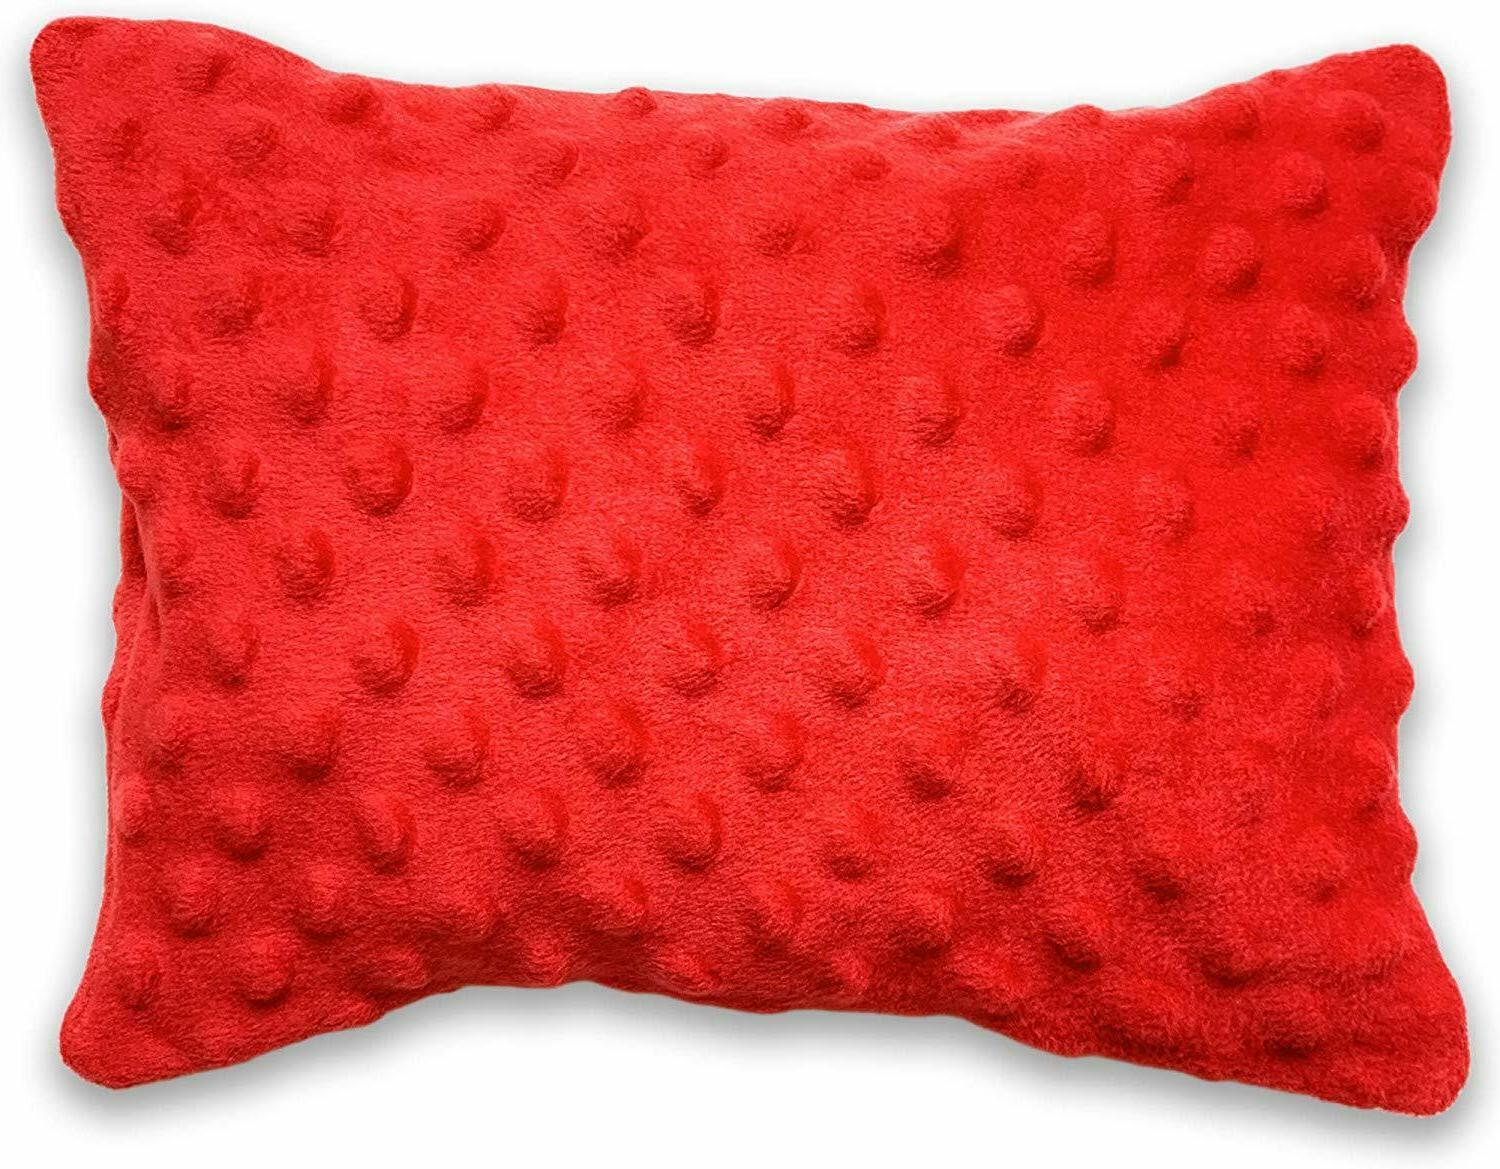 microwavable buckwheat heating pad hot and cold